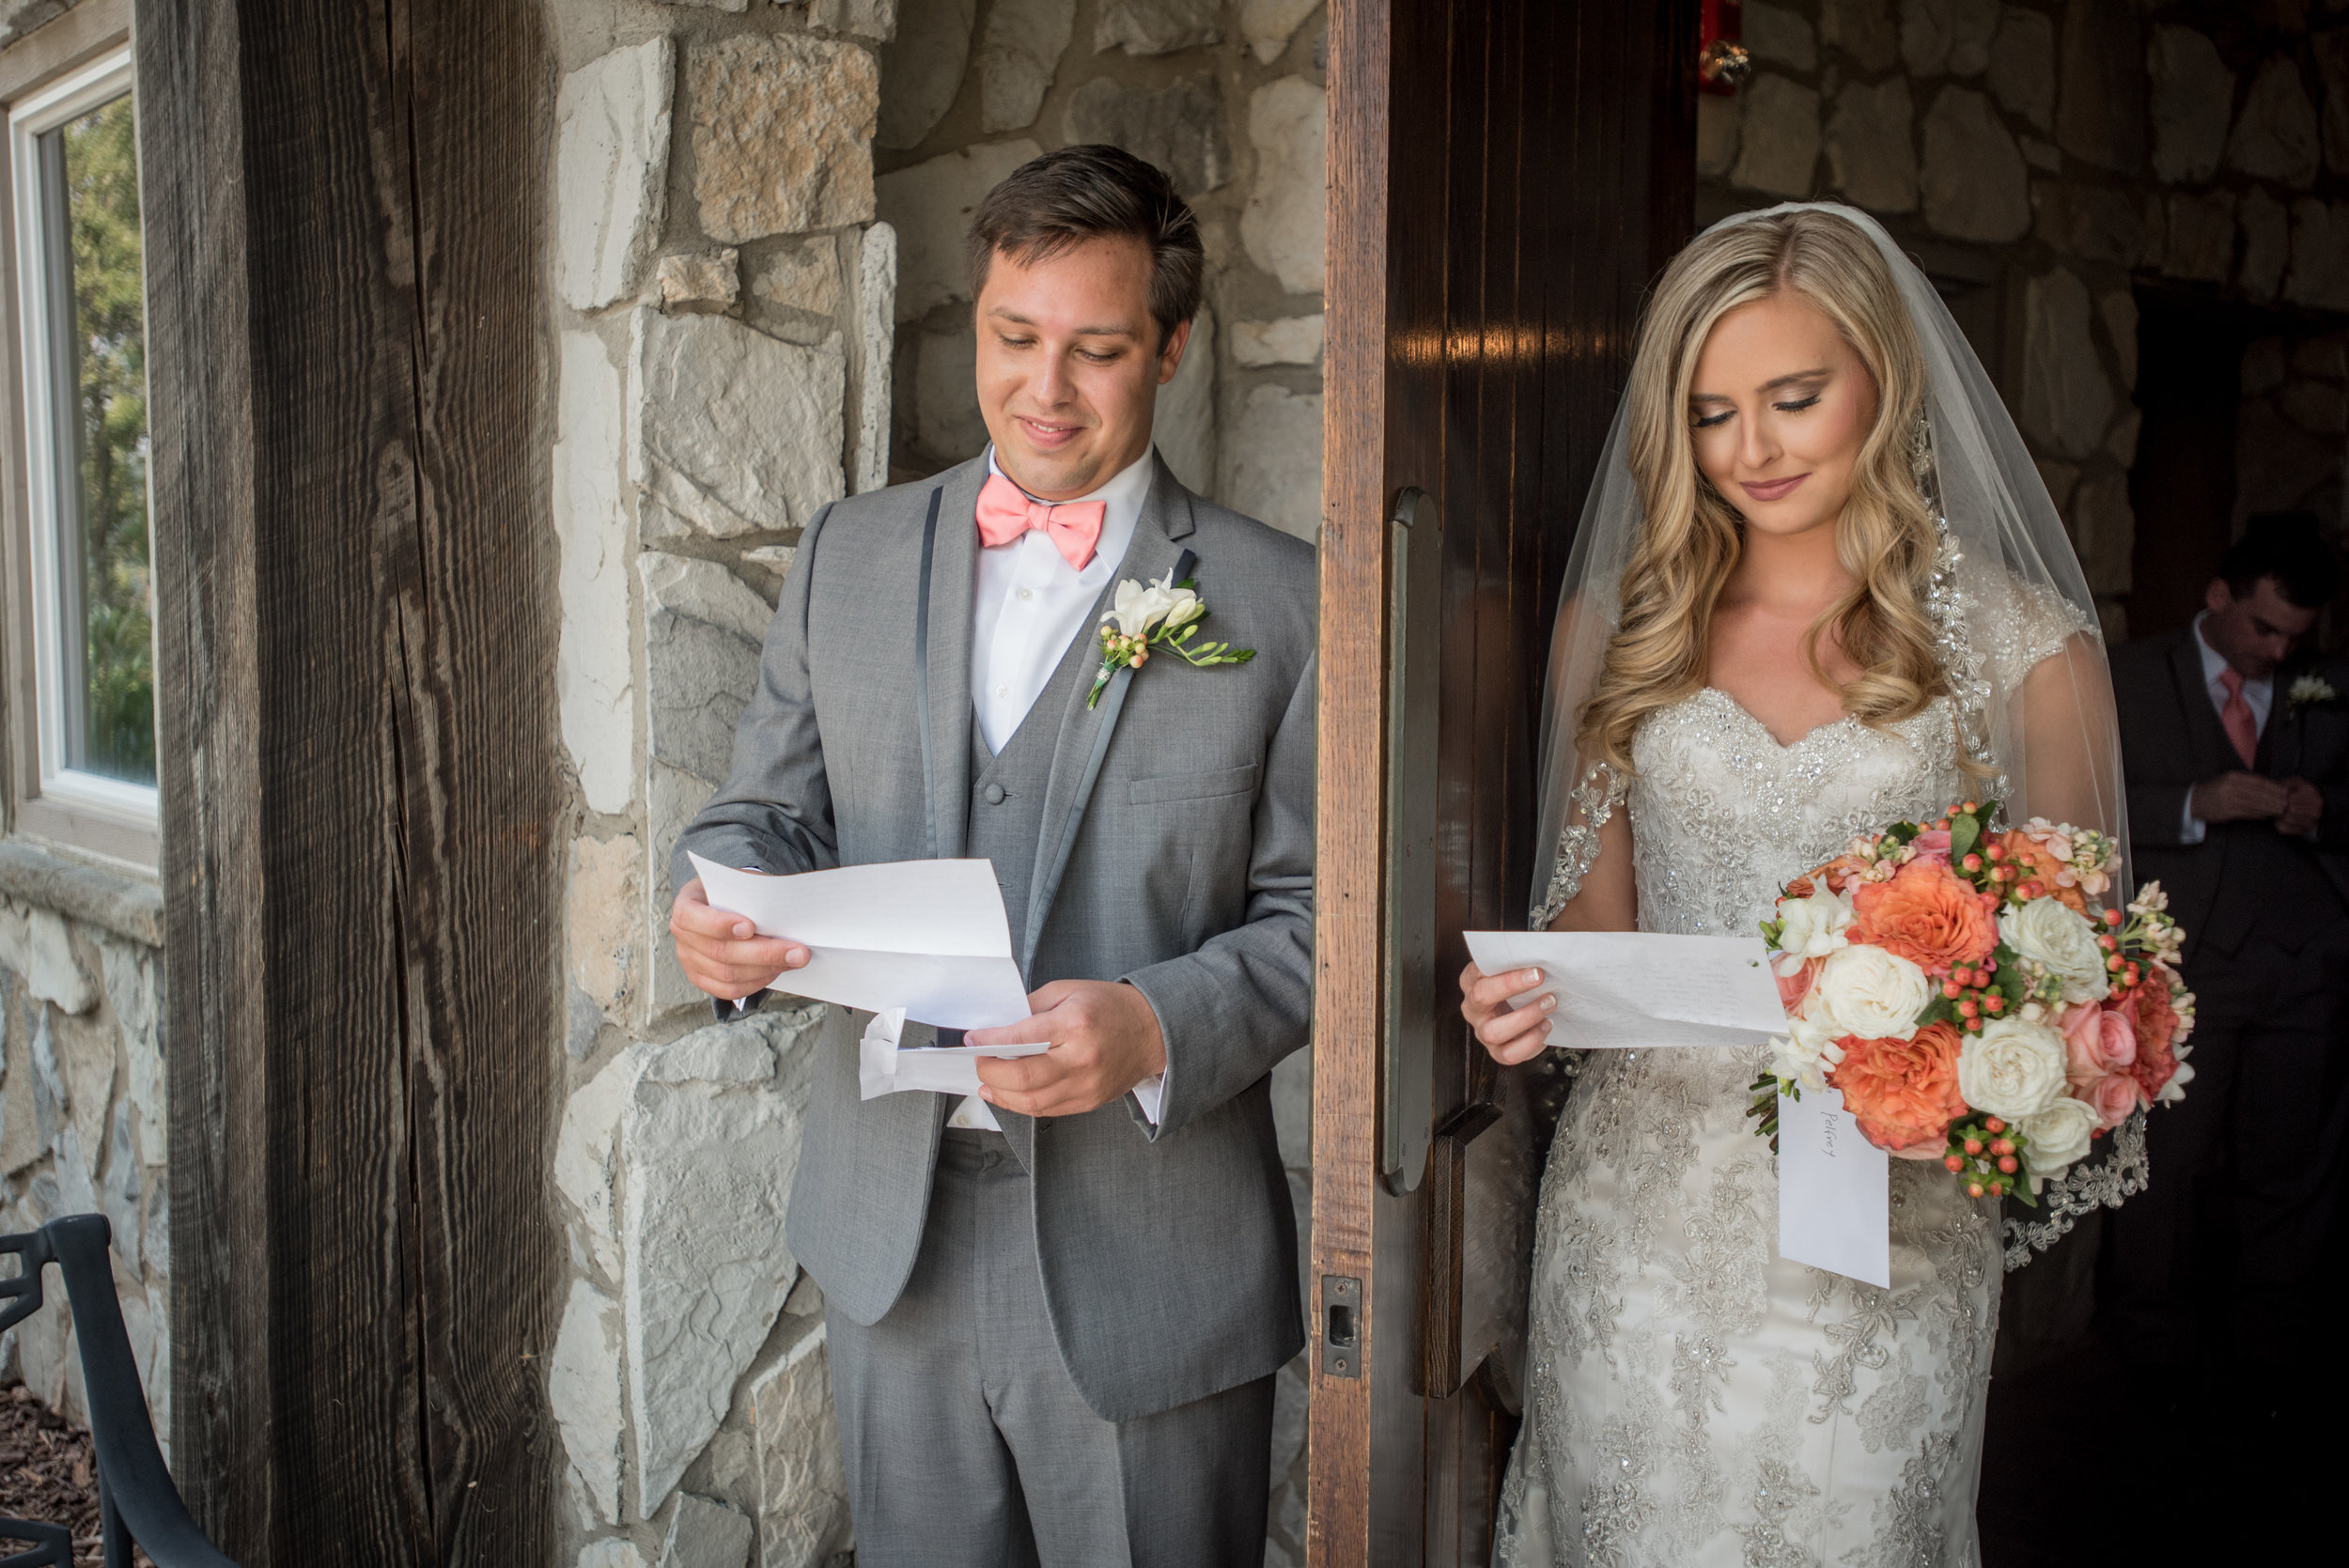 Instead of a first look, Leah & Alex chose to read letters from each other while standing on opposite sides of a door. This allowed Todd from Magnolia Studios to capture an intimate moment with the couple without them seeing one another before the ceremony.